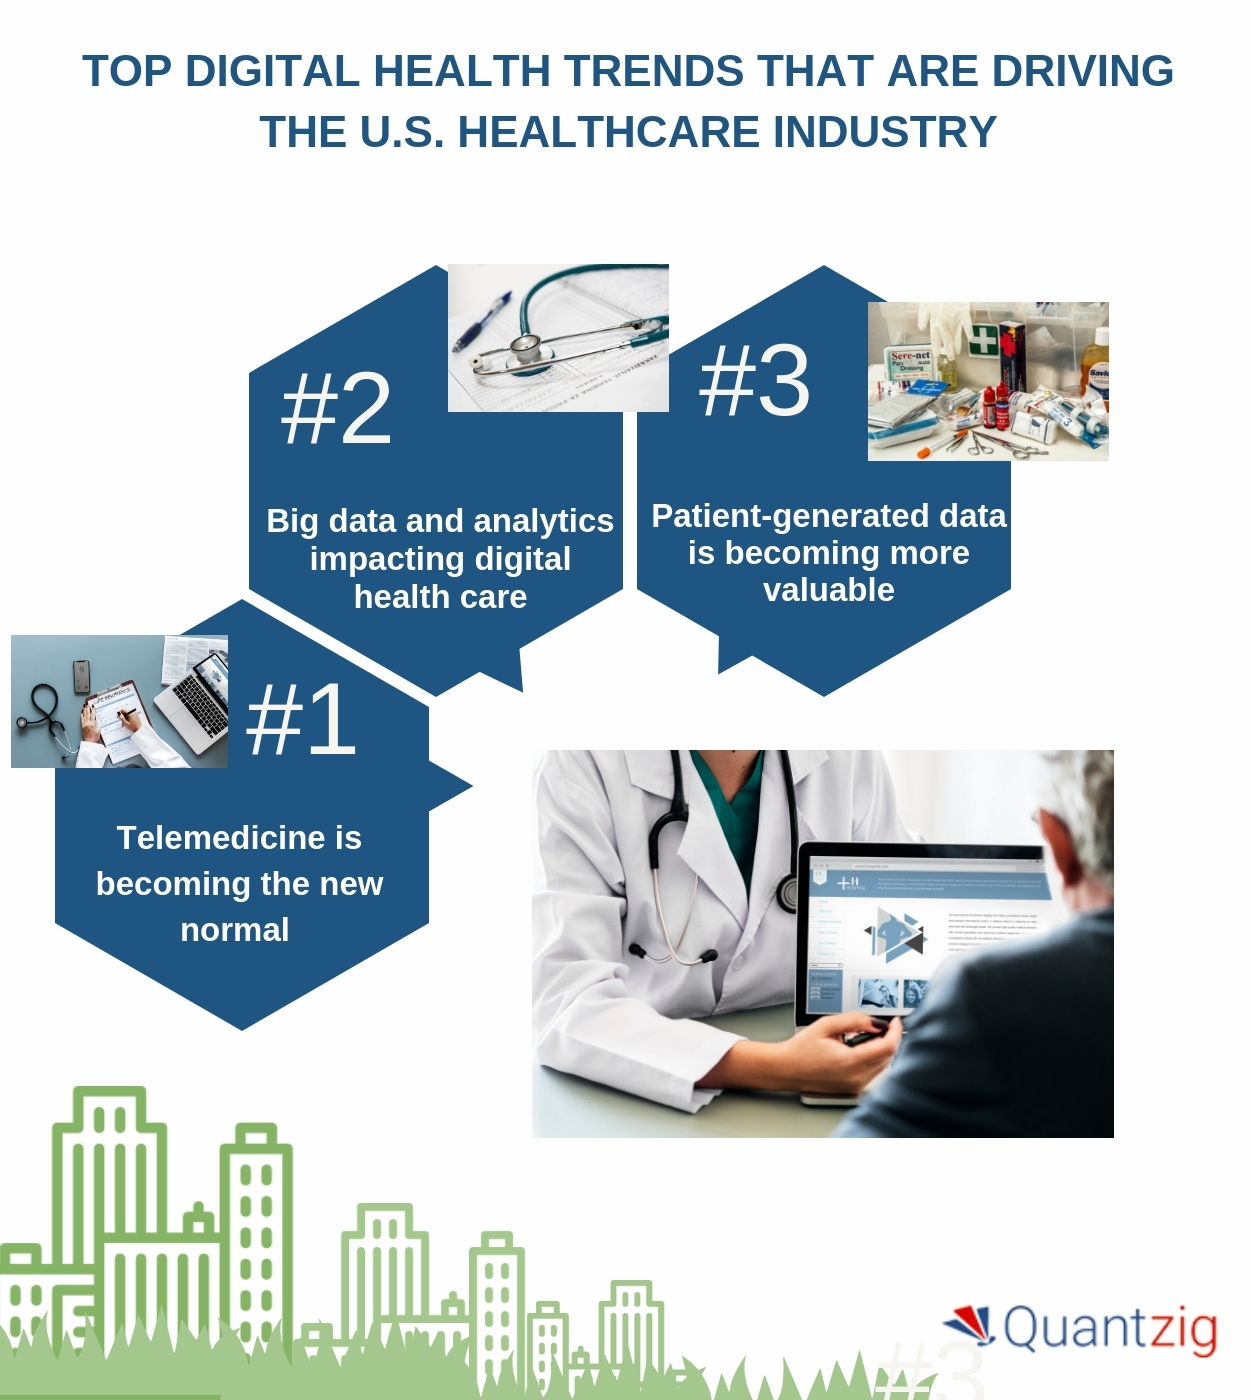 Top Digital Health Trends That Are Driving the U S